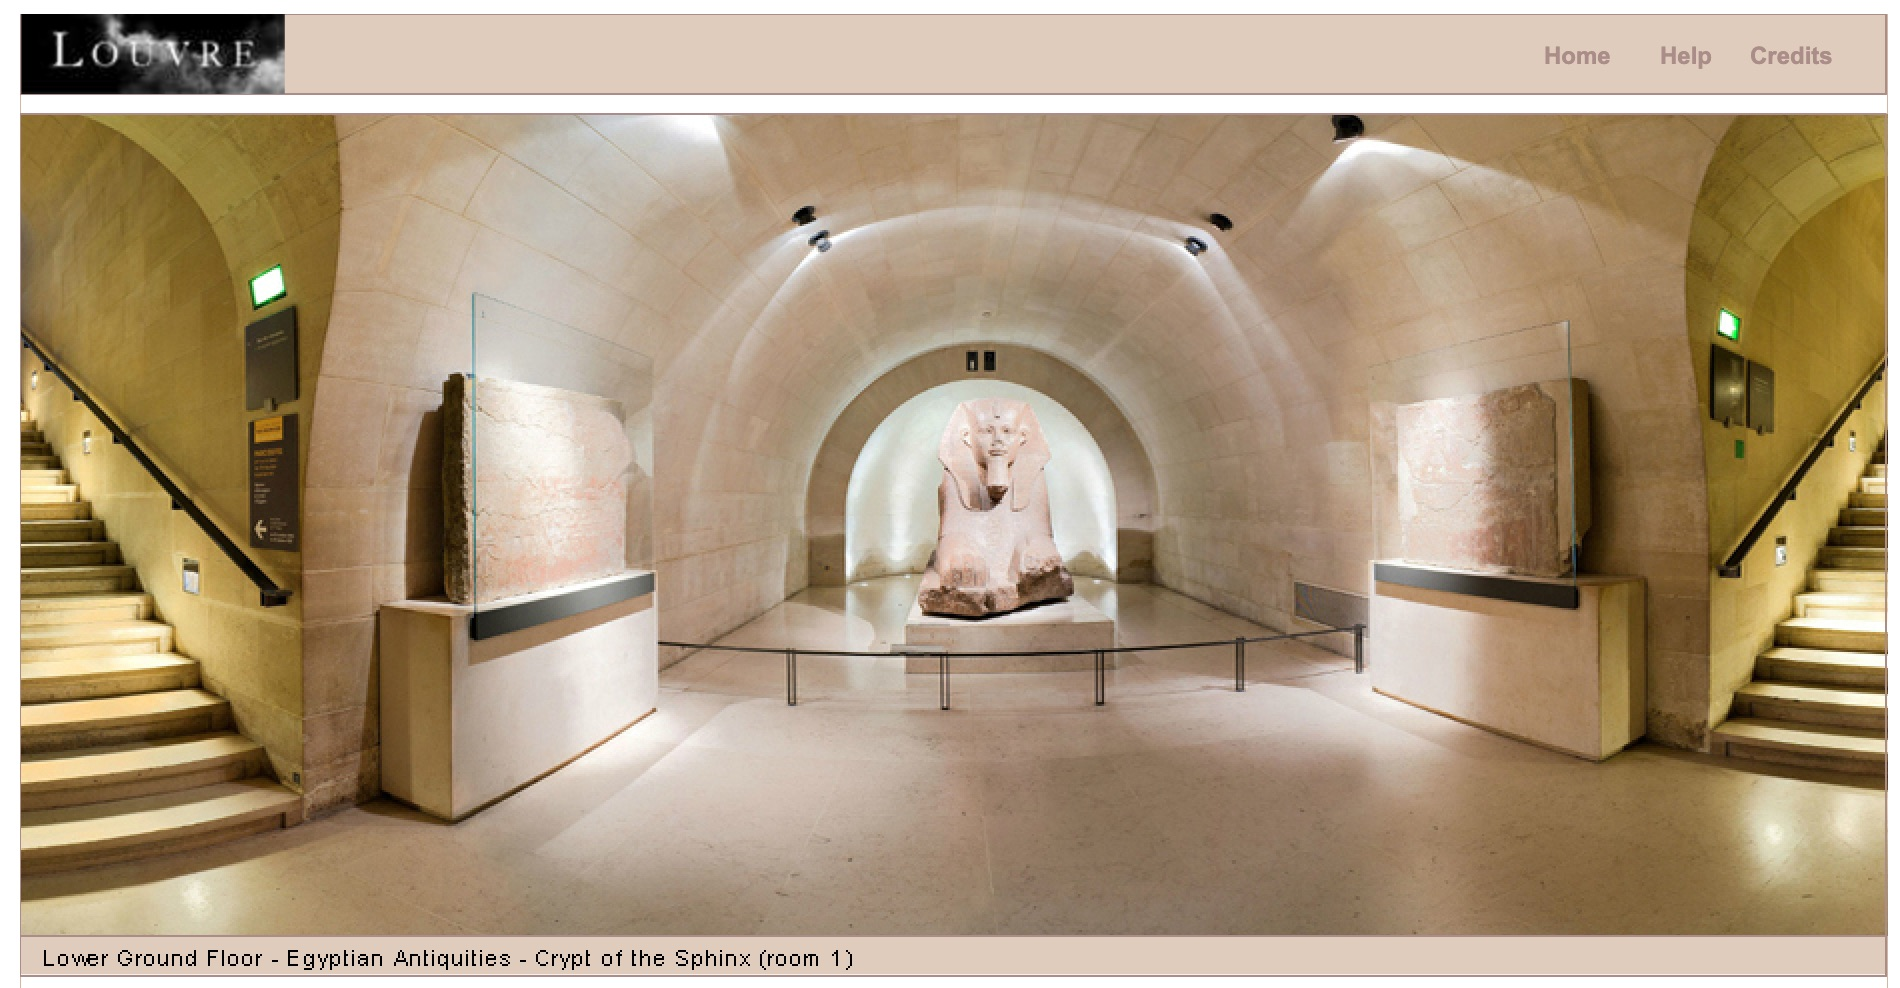 Take a virtual tour of the Louvre